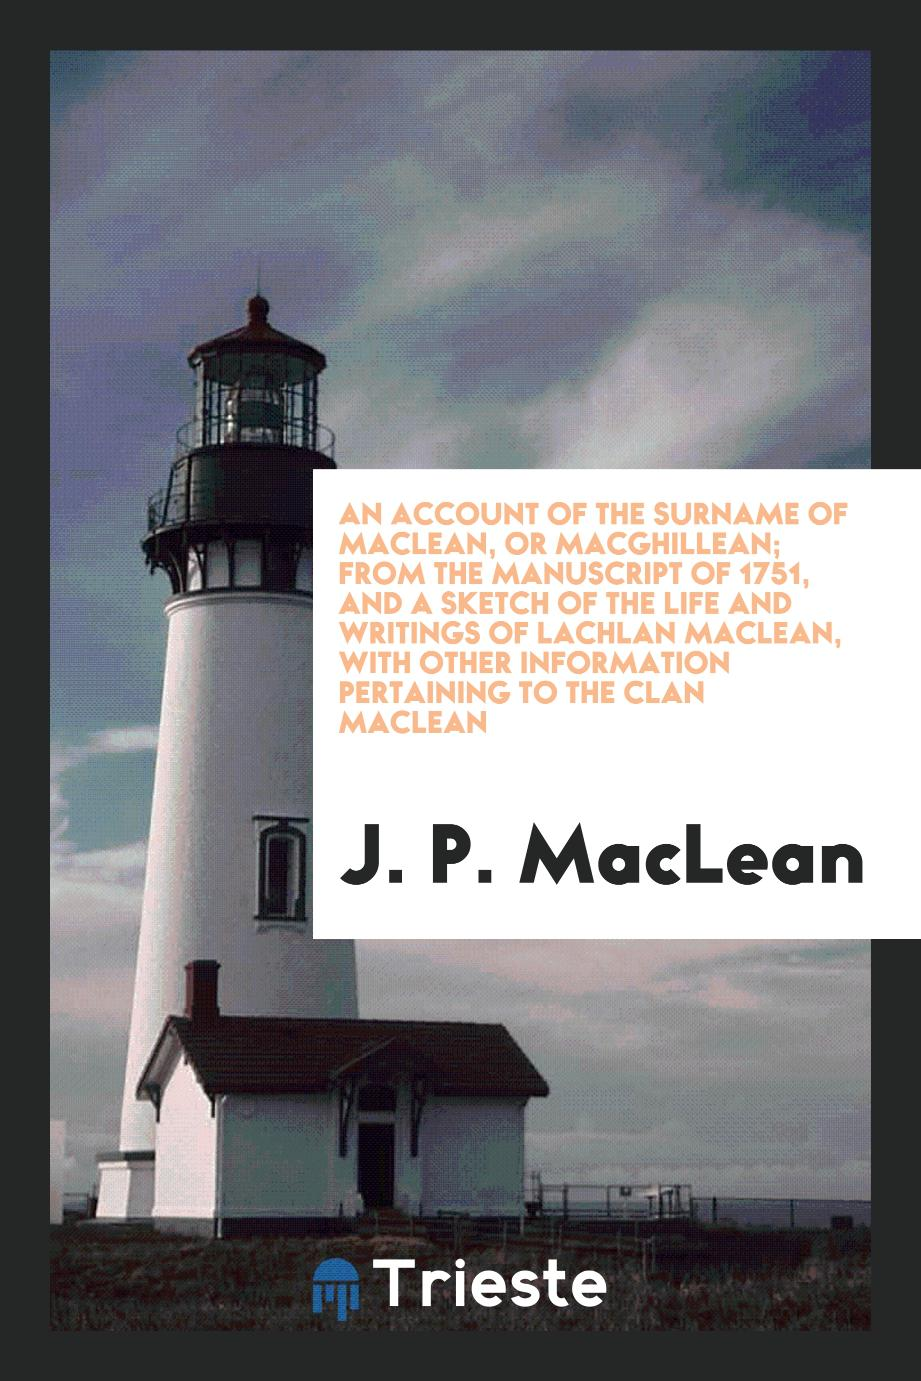 J. P. MacLean - An account of the surname of Maclean, or Macghillean; from the manuscript of 1751, and A sketch of the life and writings of Lachlan MacLean, with other information pertaining to the clan Maclean